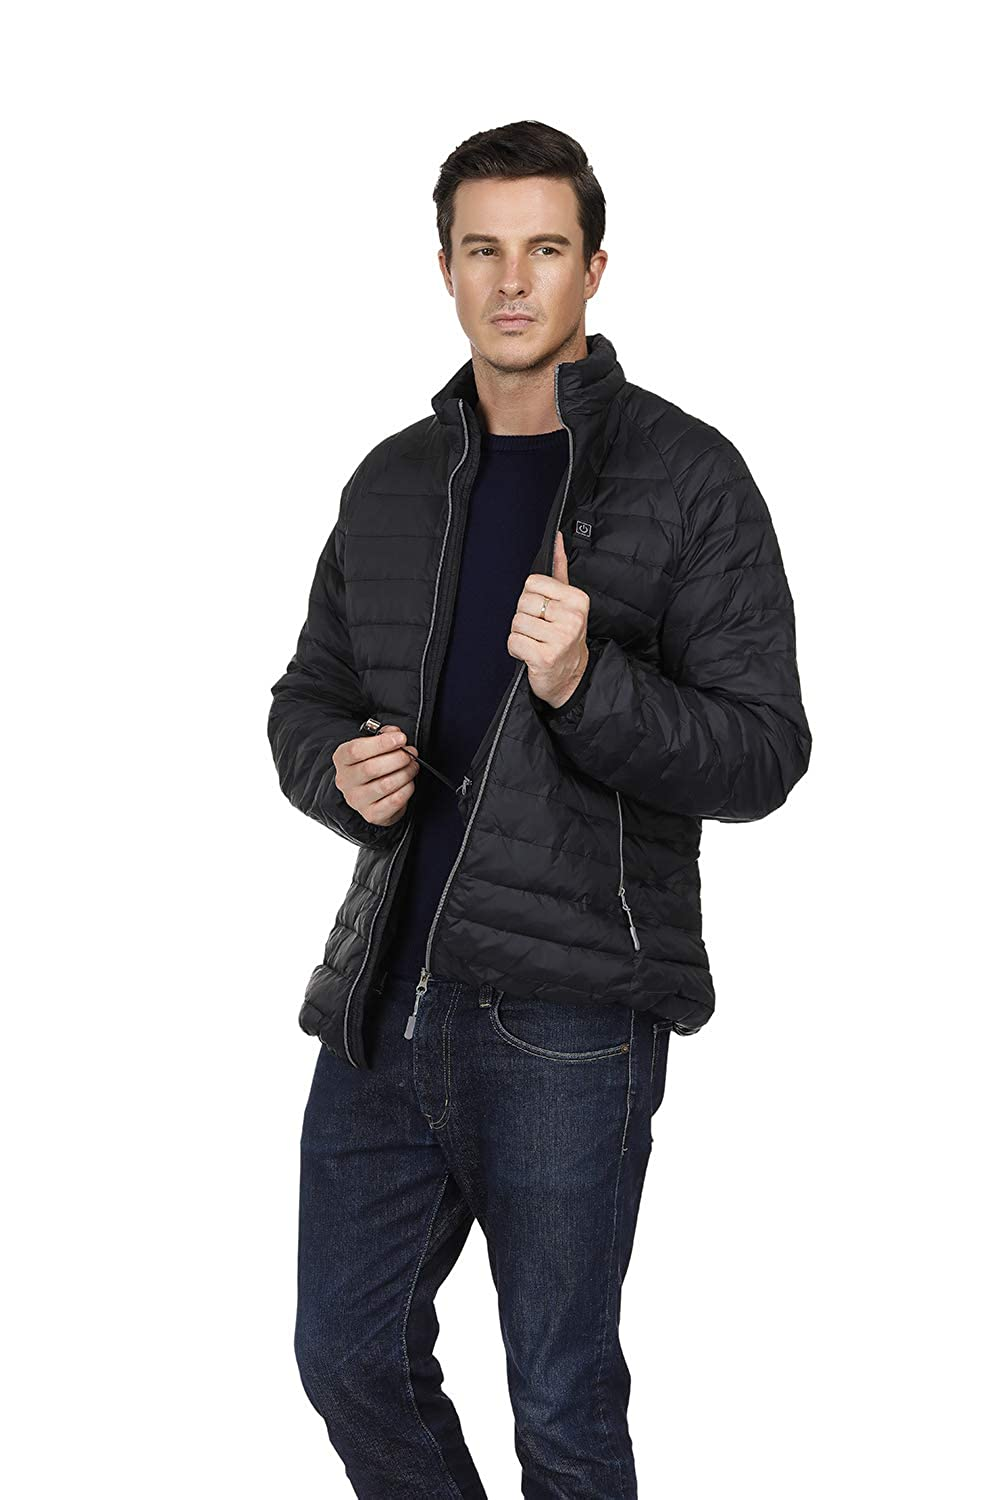 ORQ Mens Soft Heated Jacket 7.4 V Battery Electric Waterproof Warm Heating Clothing